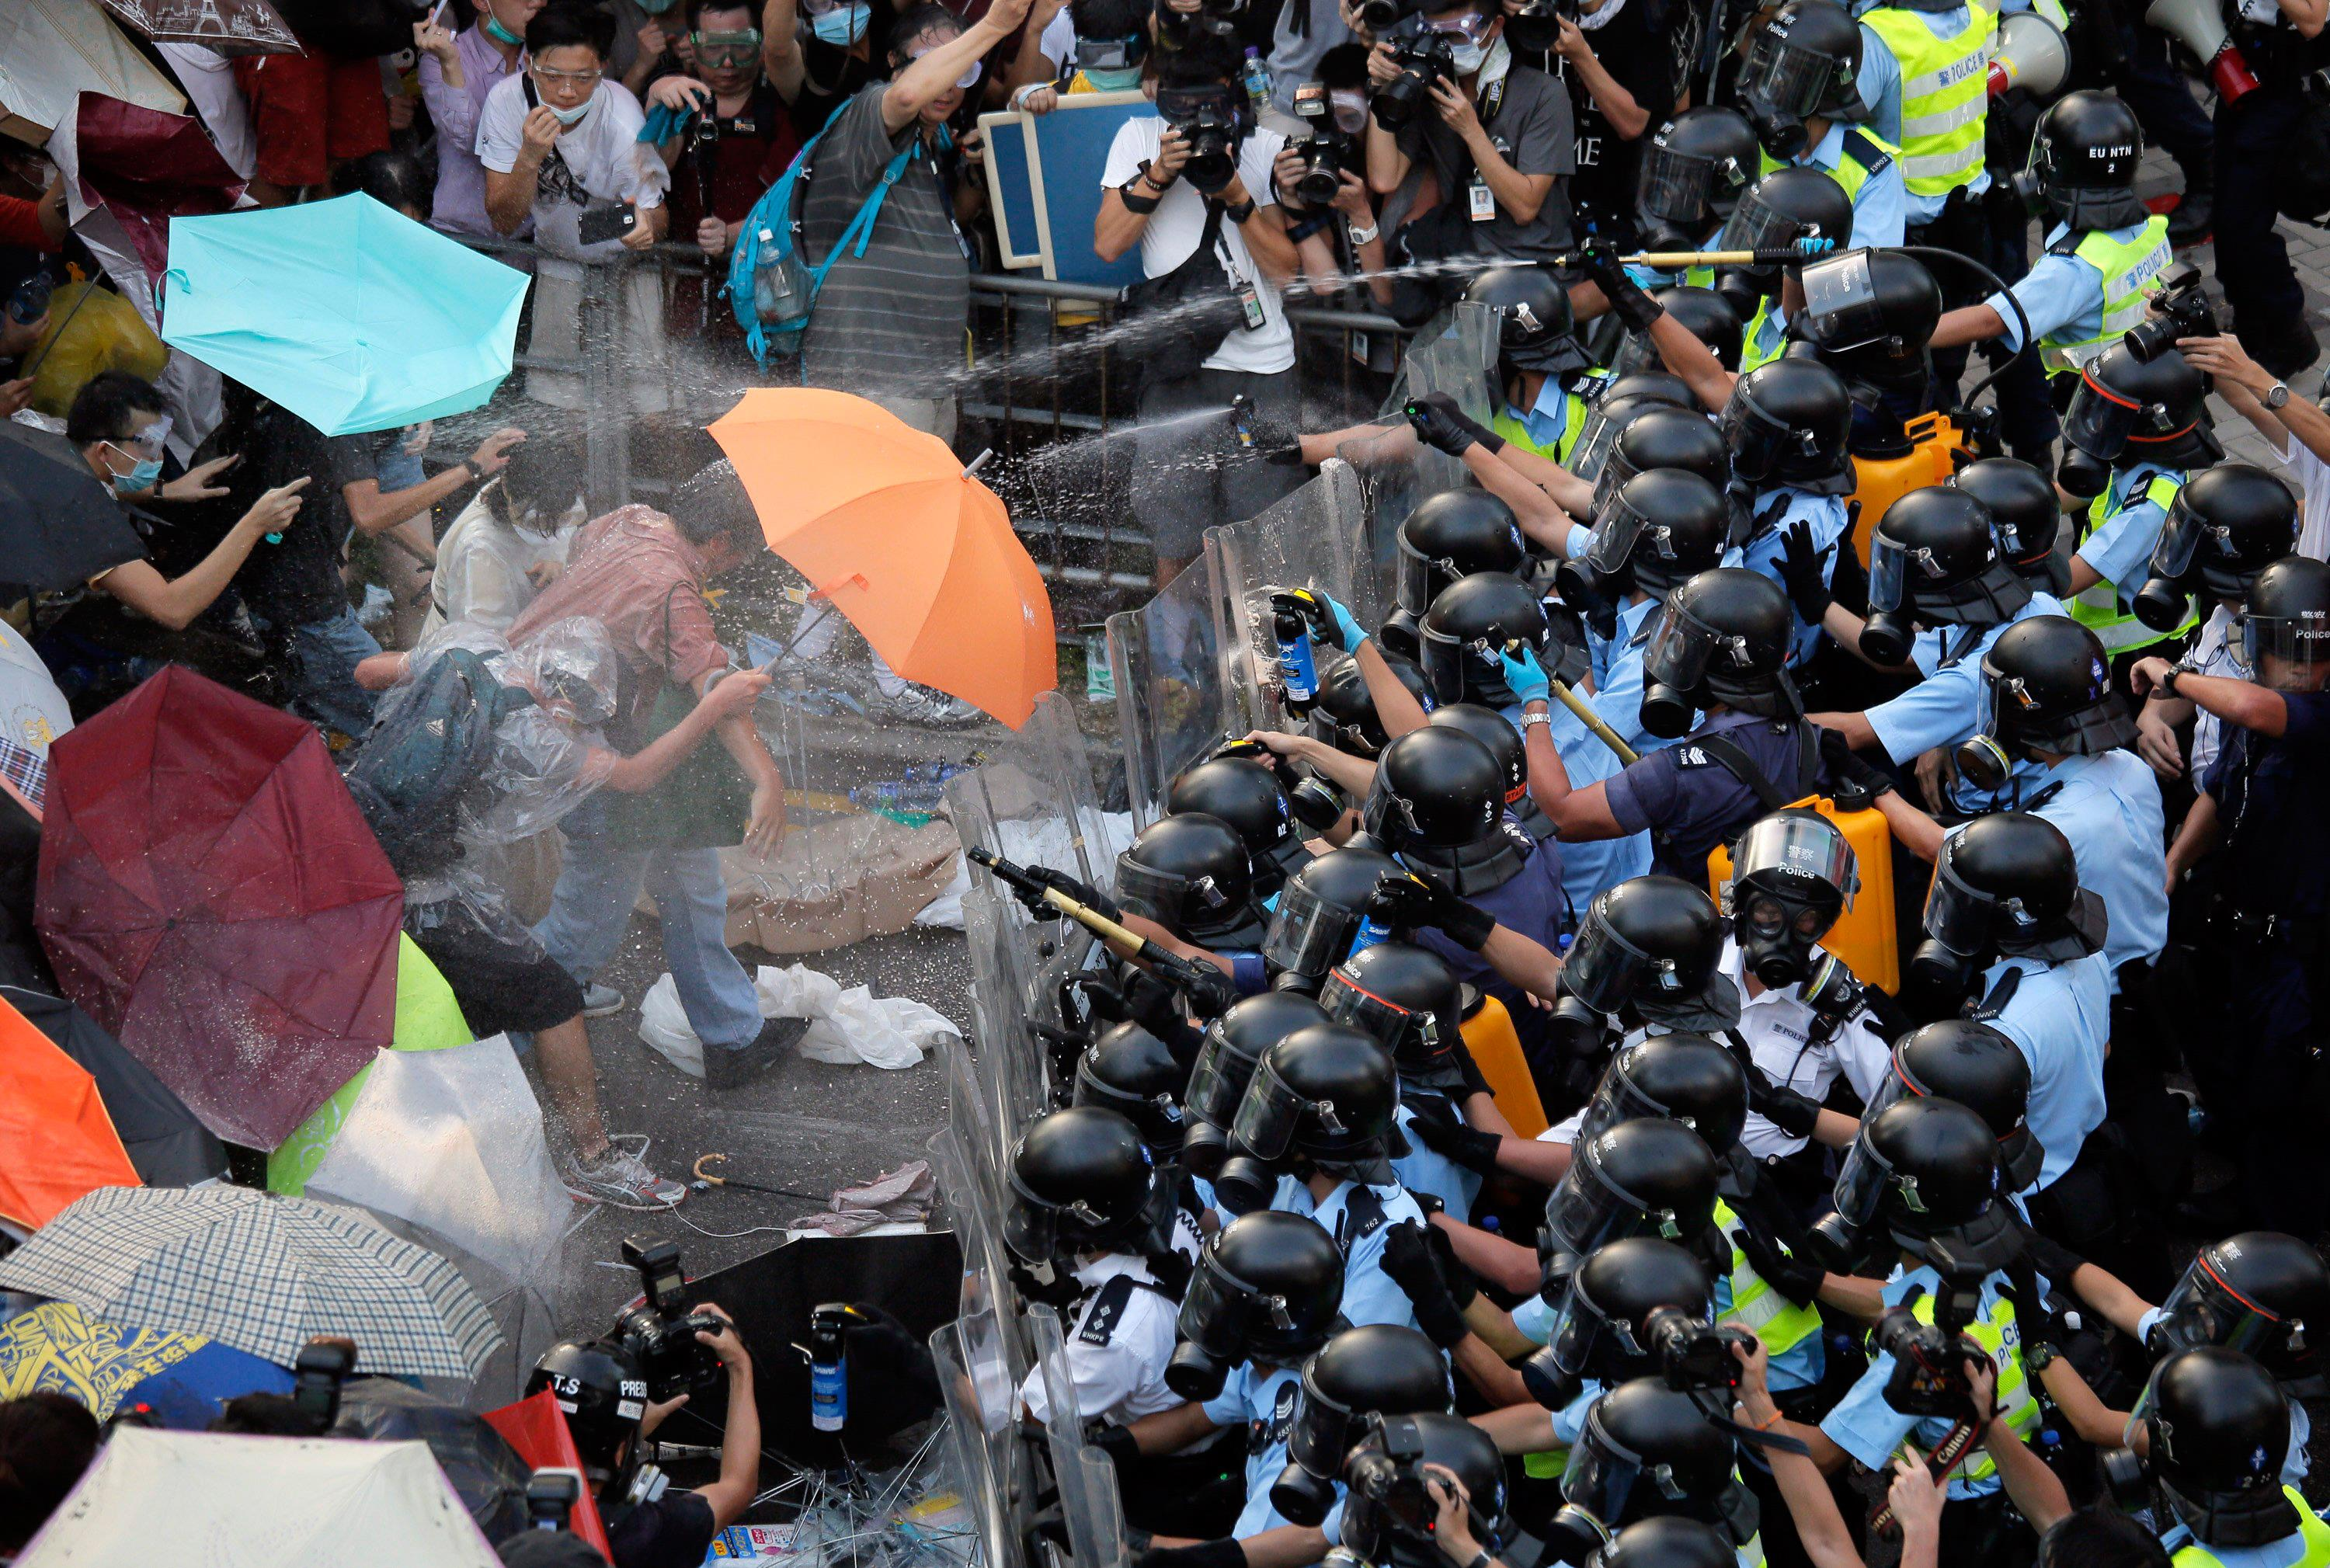 140928-hong-kong-pepper-spray-jms-2241_f065f0388936f0abae30d3aa244309da.jpg